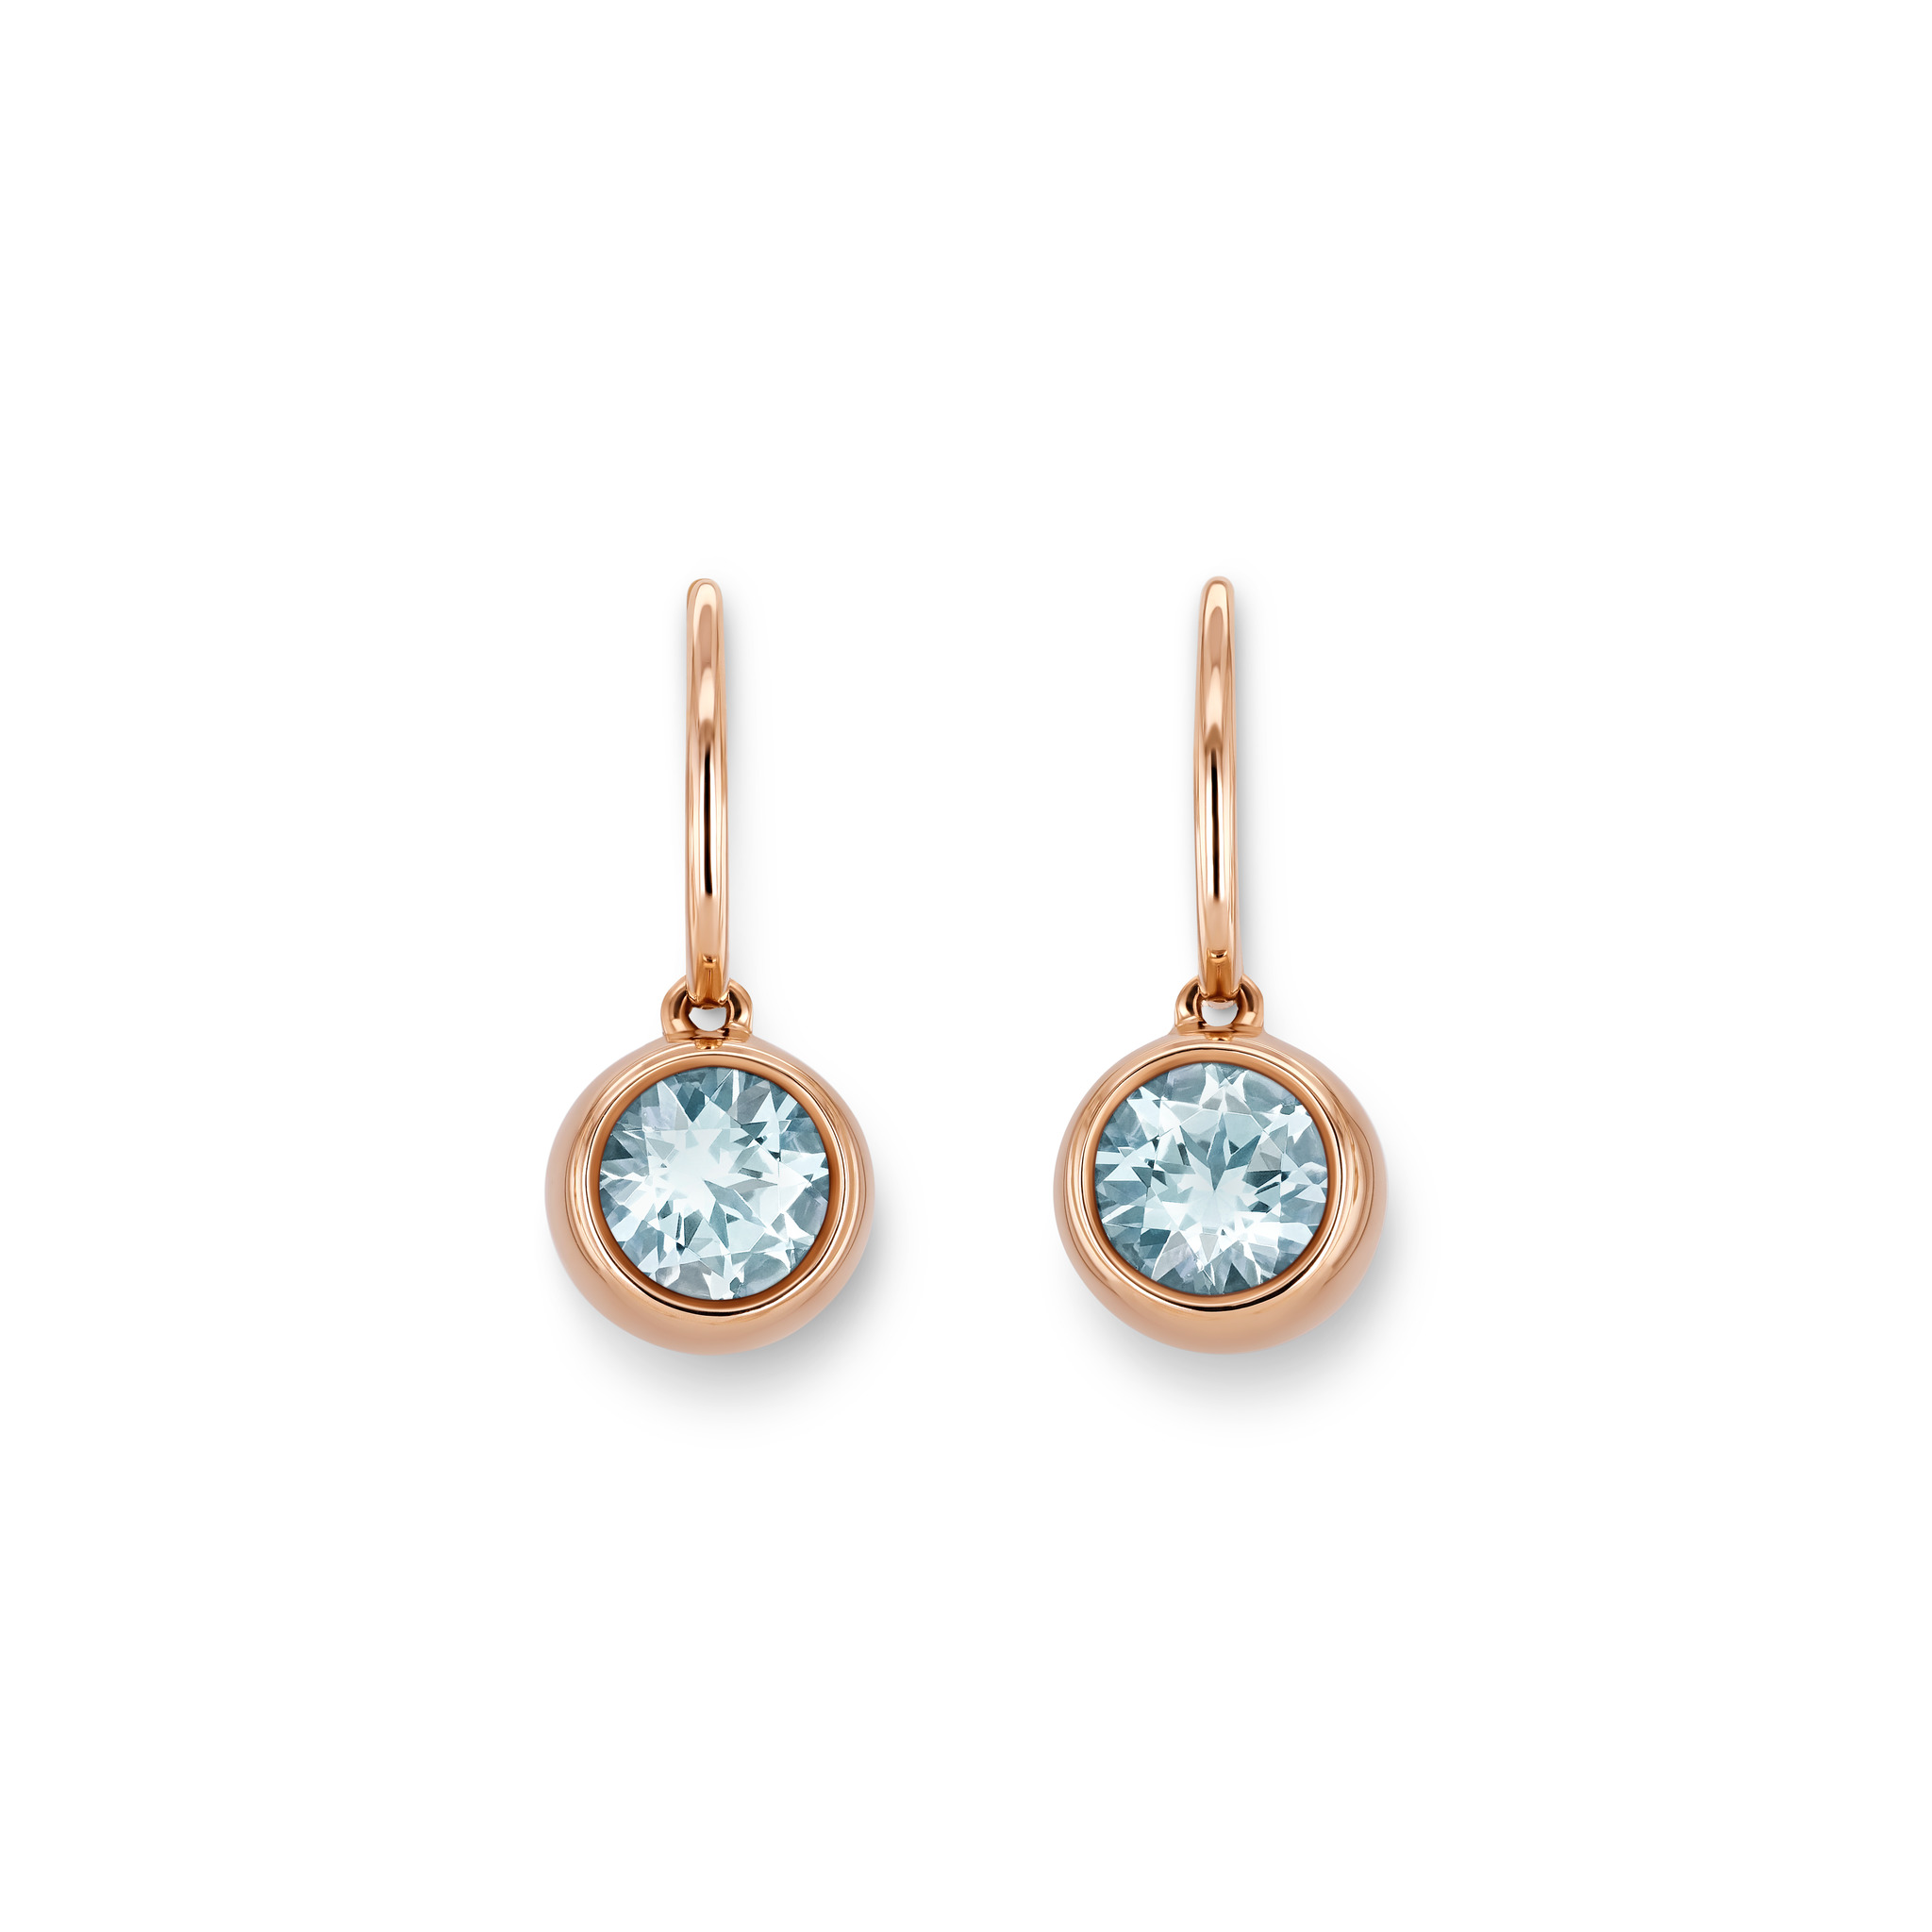 Earrings with aquamarines